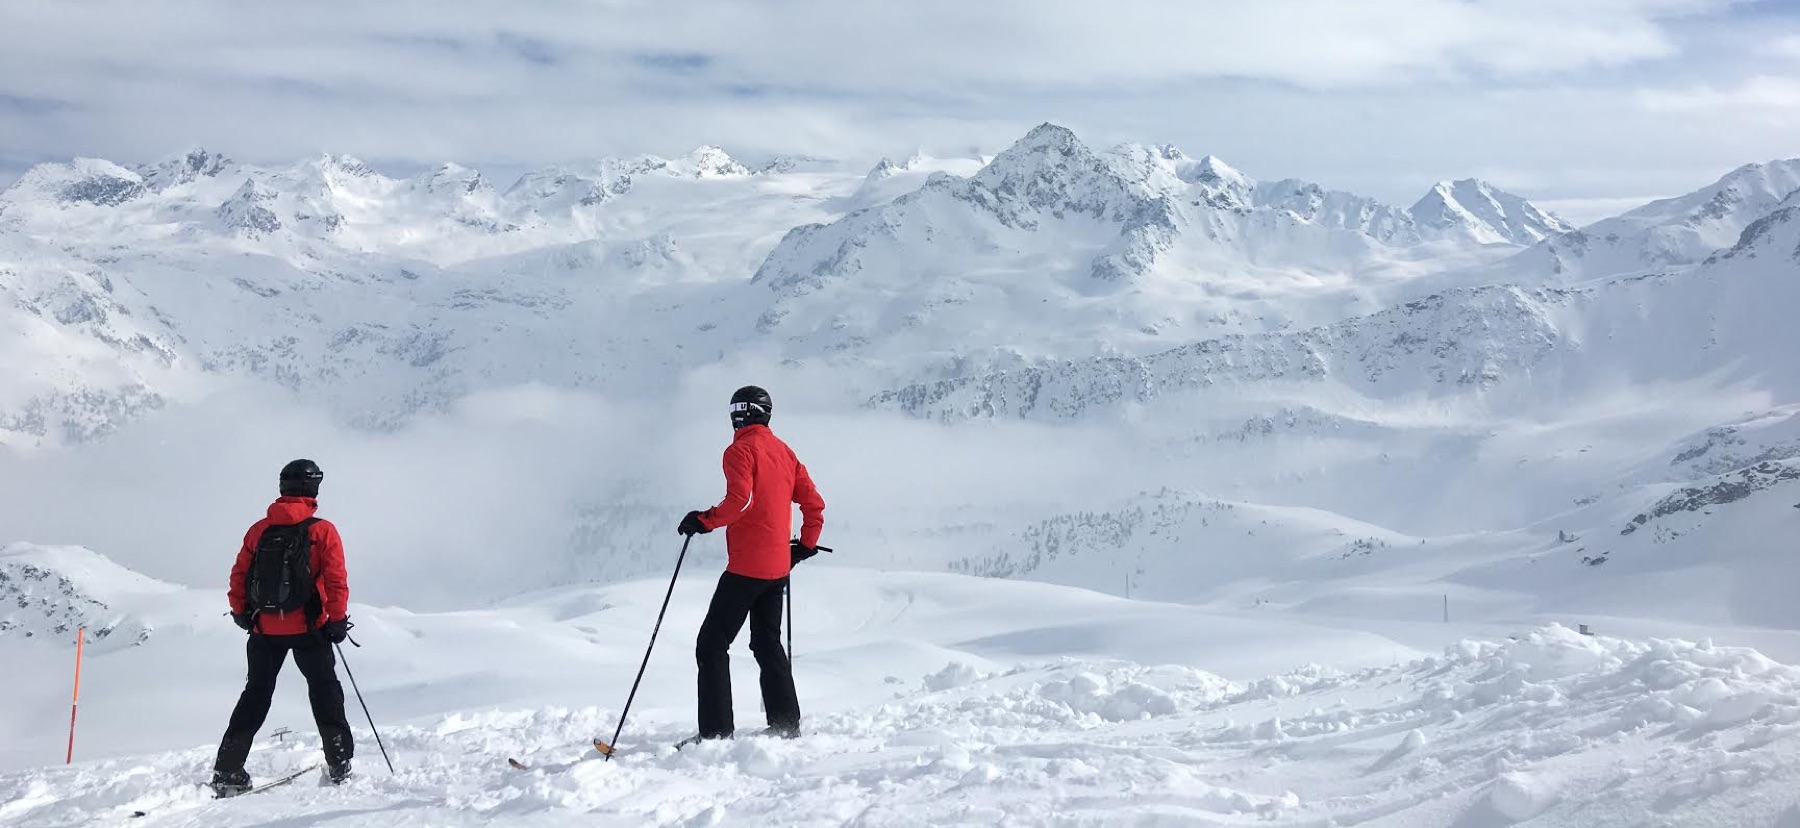 two skiers look out at large mountain covered in snow